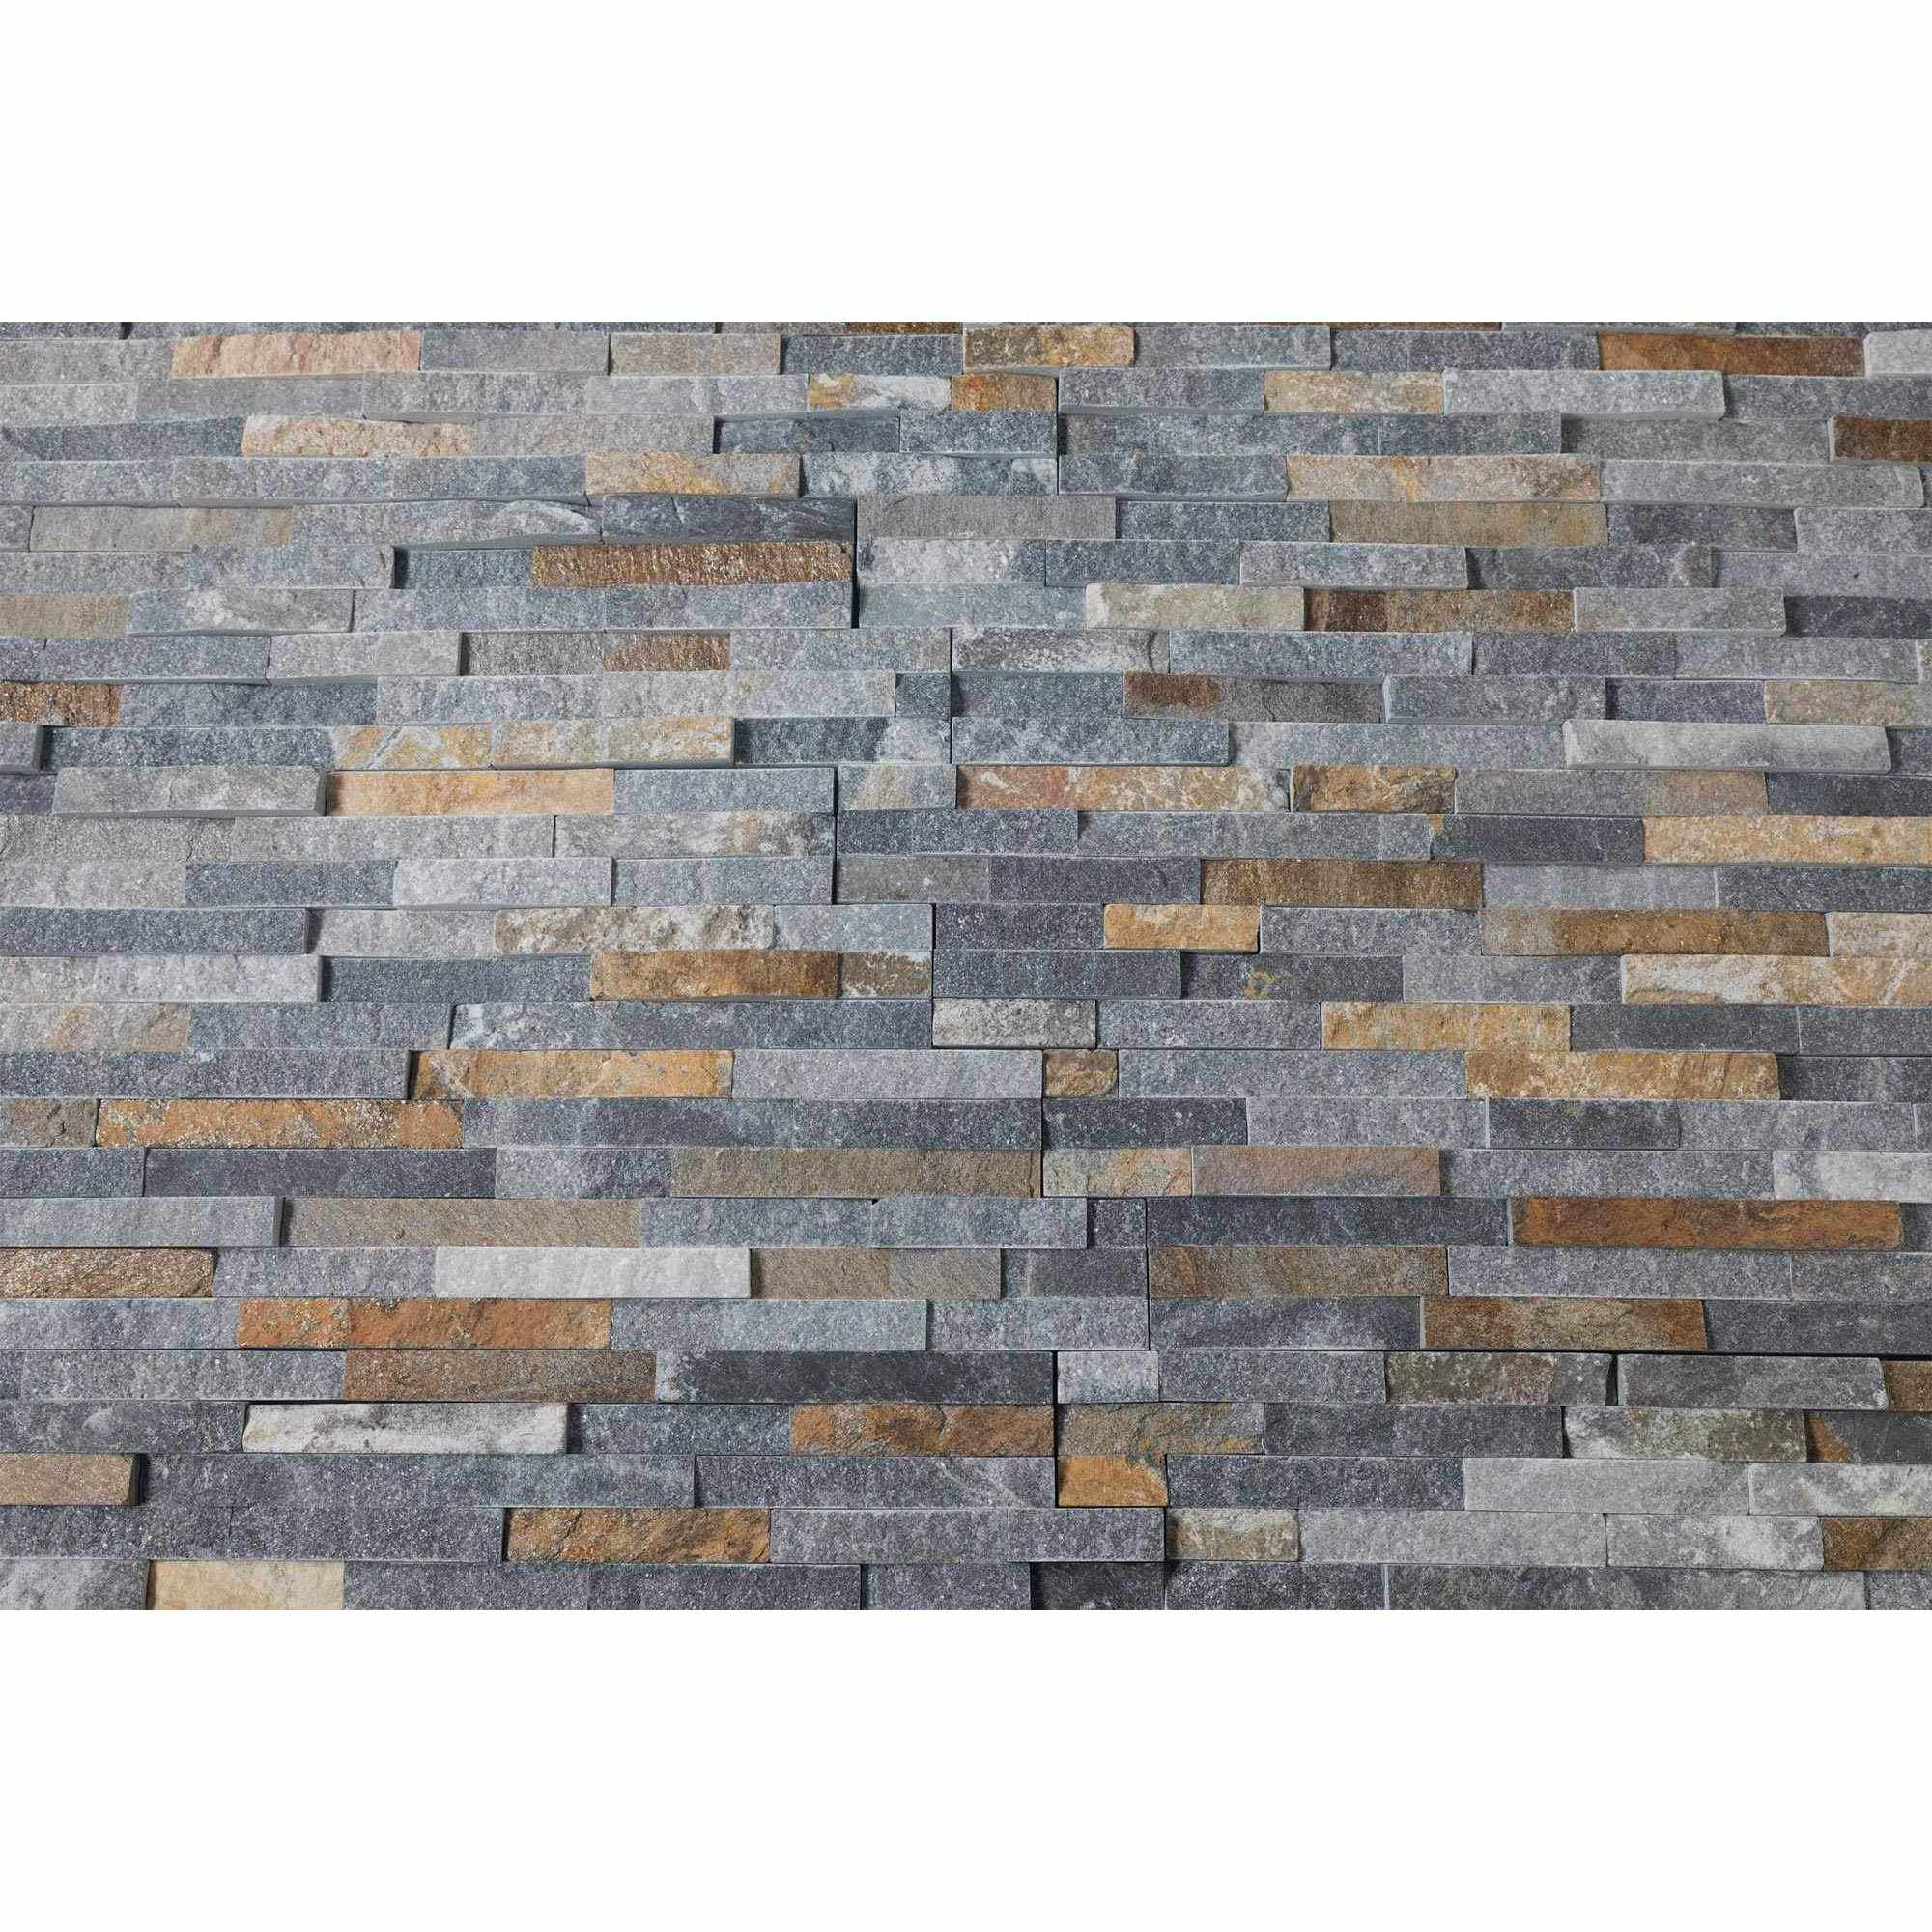 Natural Stacked Stone Feature Wall Cladding Panels - Rusty Black Stackstone-Wall Cladding-Stone and Rock